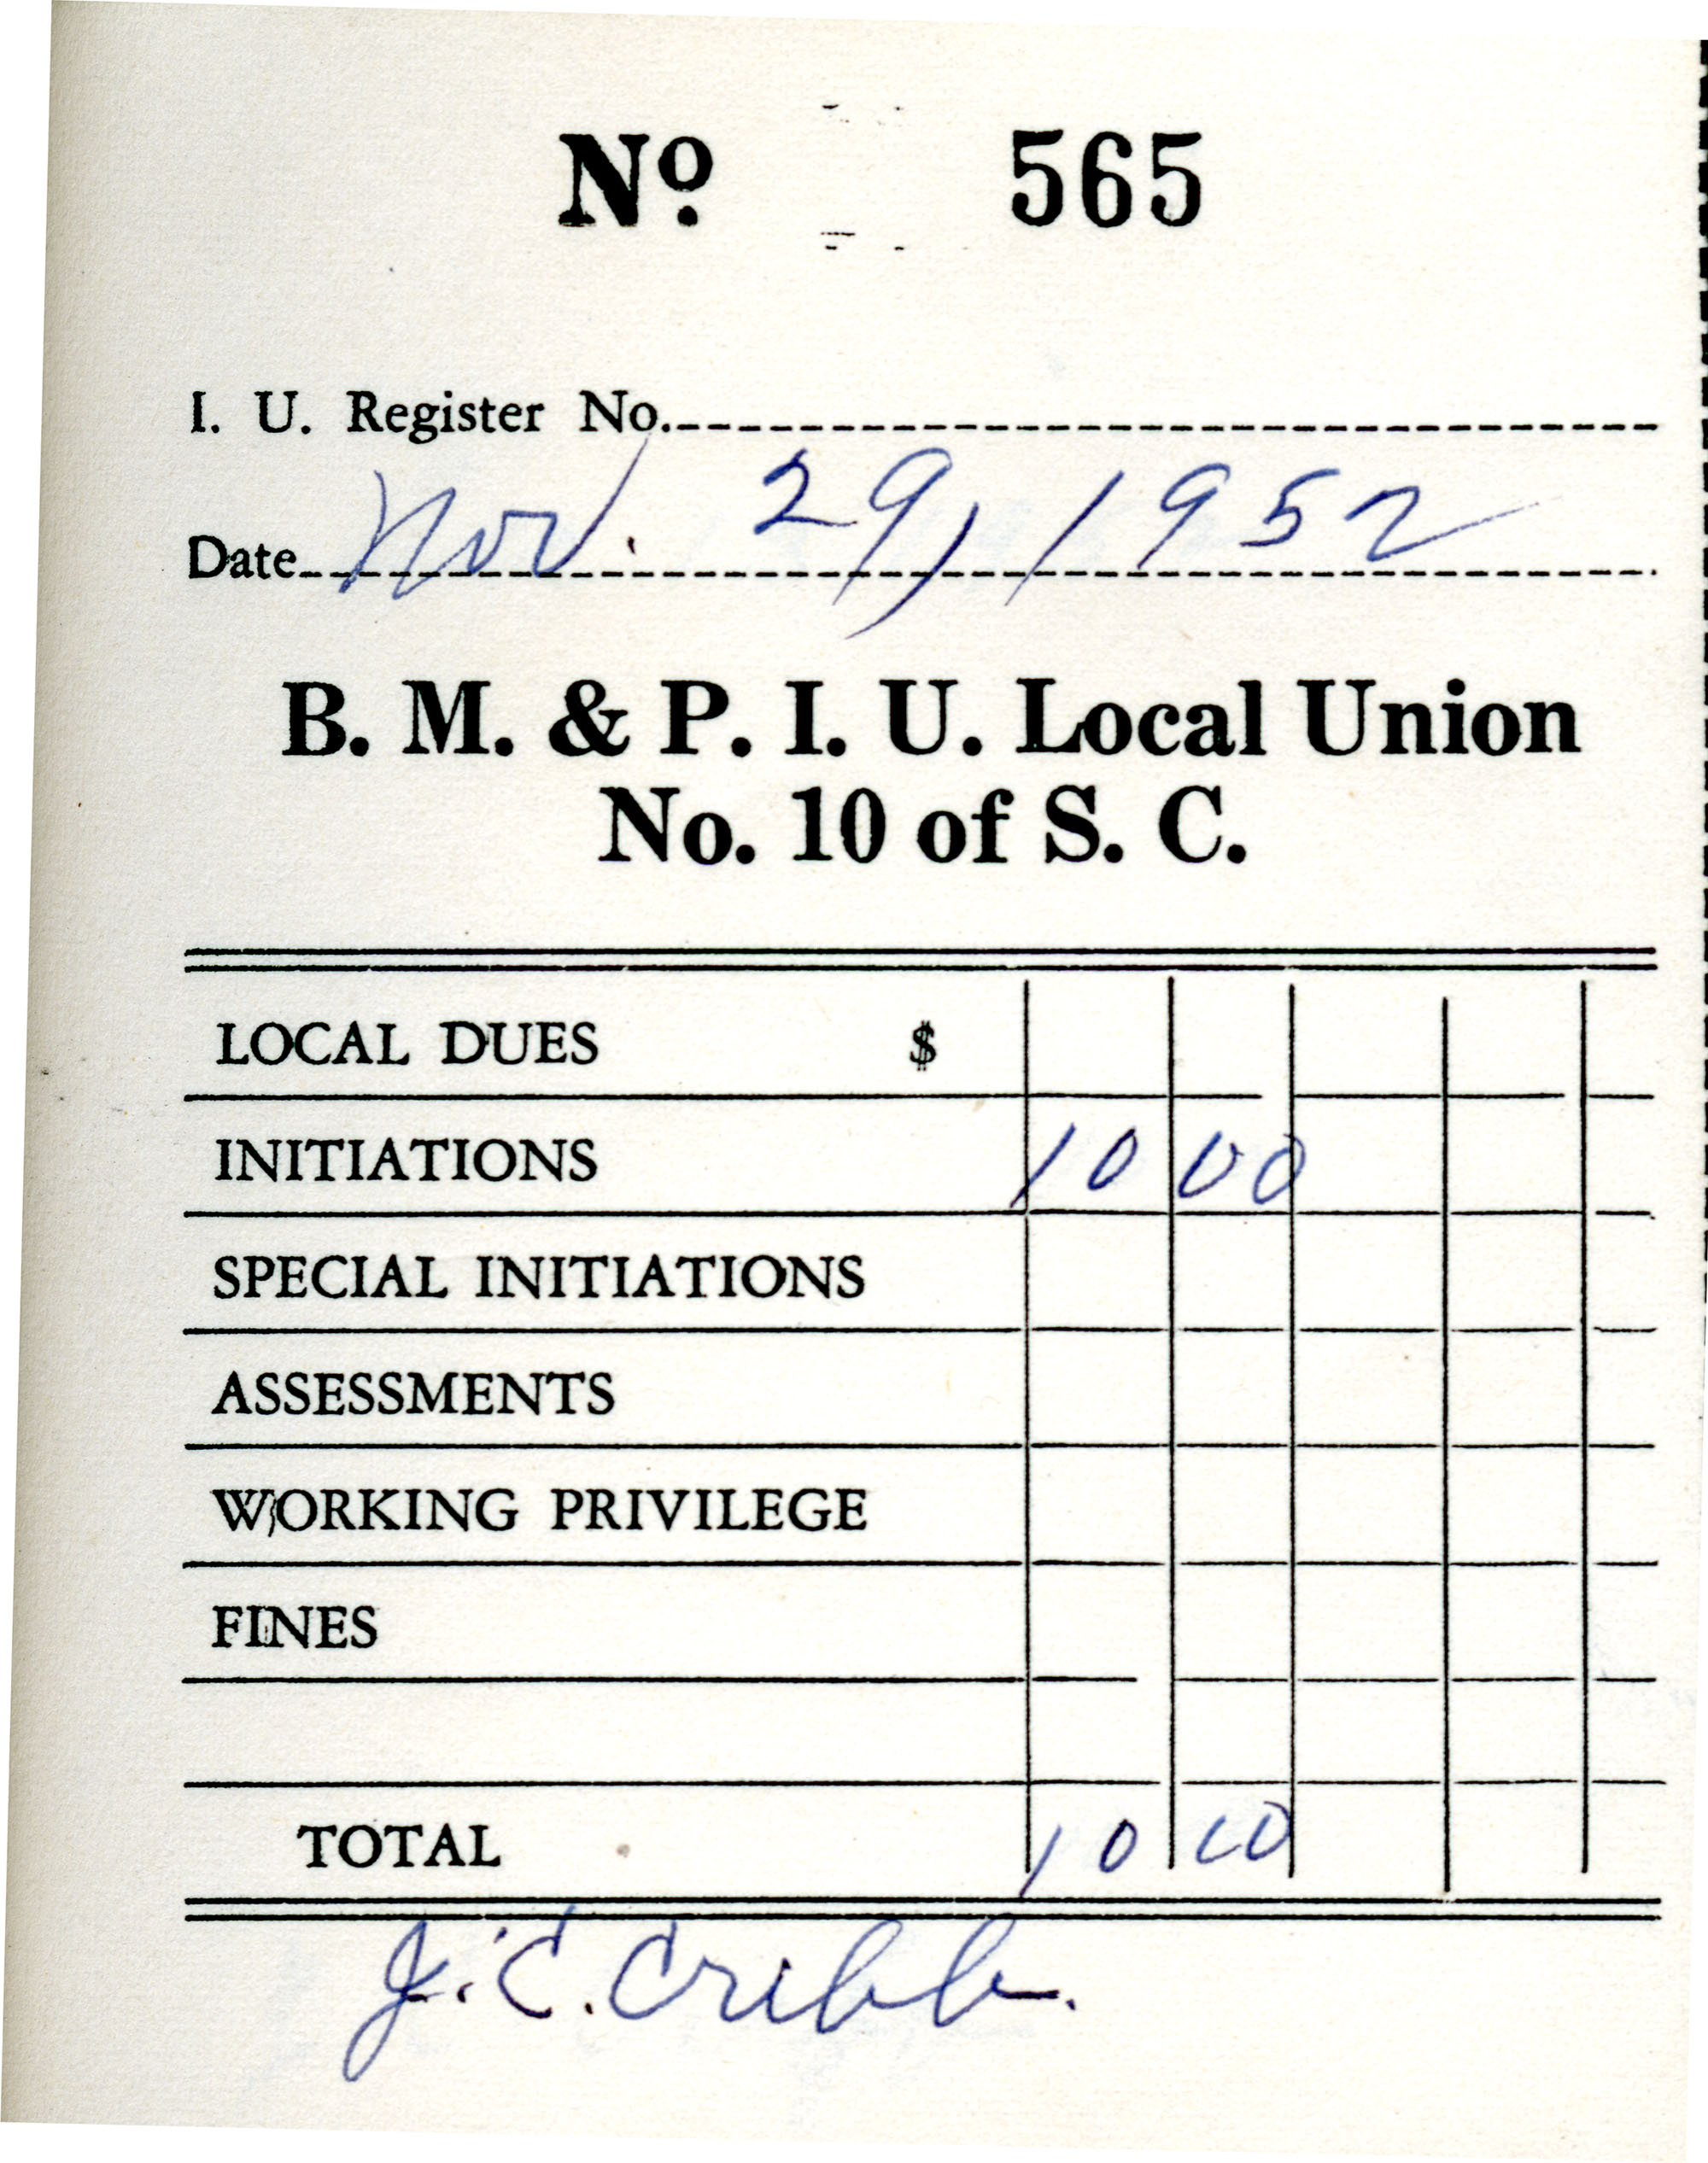 Receipt Book 1, Page 15